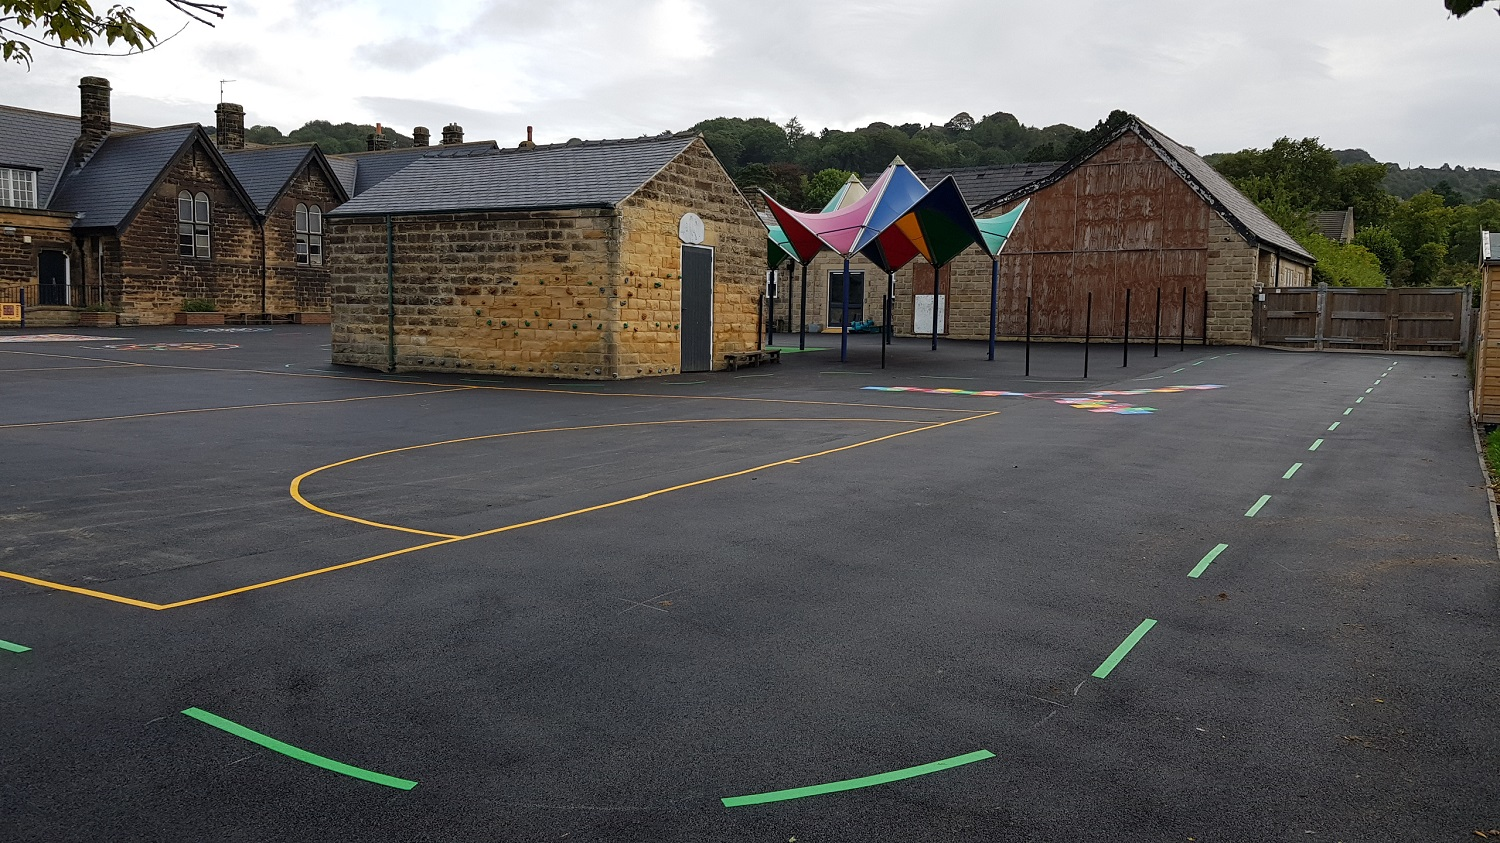 P10 Playground Tarmac Surfacing & Playground Markings at Ashover Primary School in Ashover